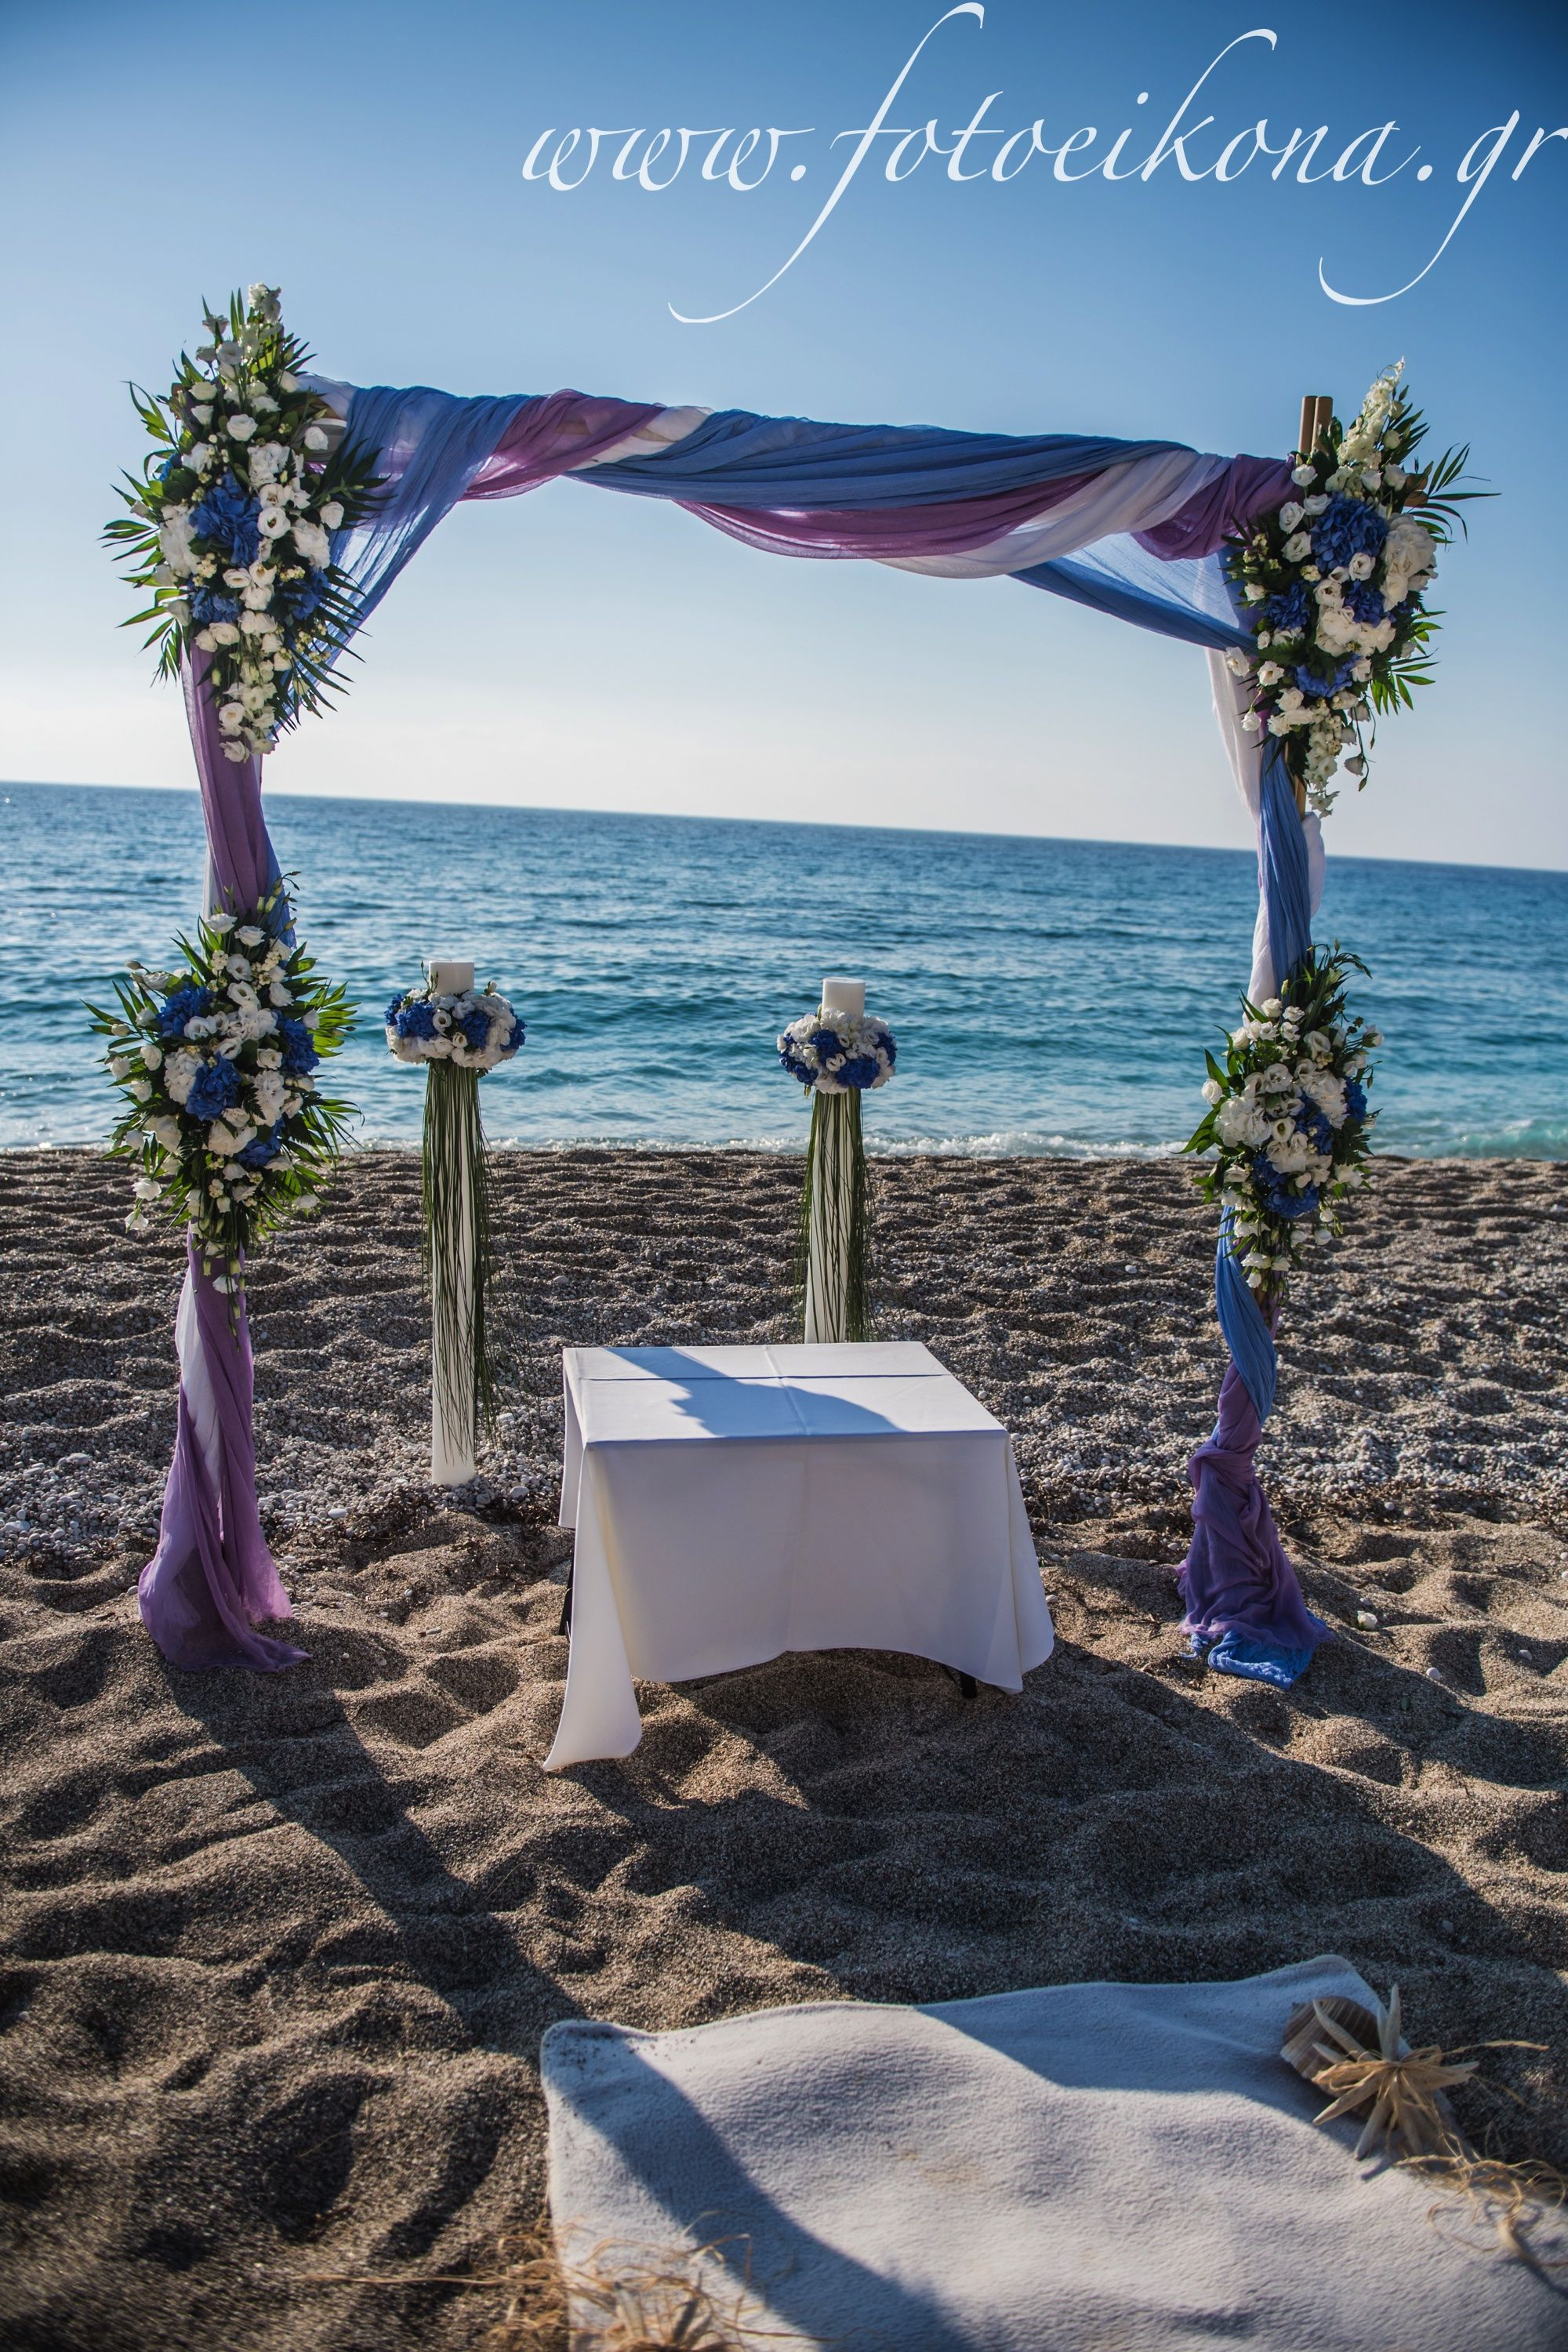 orthodox beach wedding blessing in lefkada with arch and lampathes